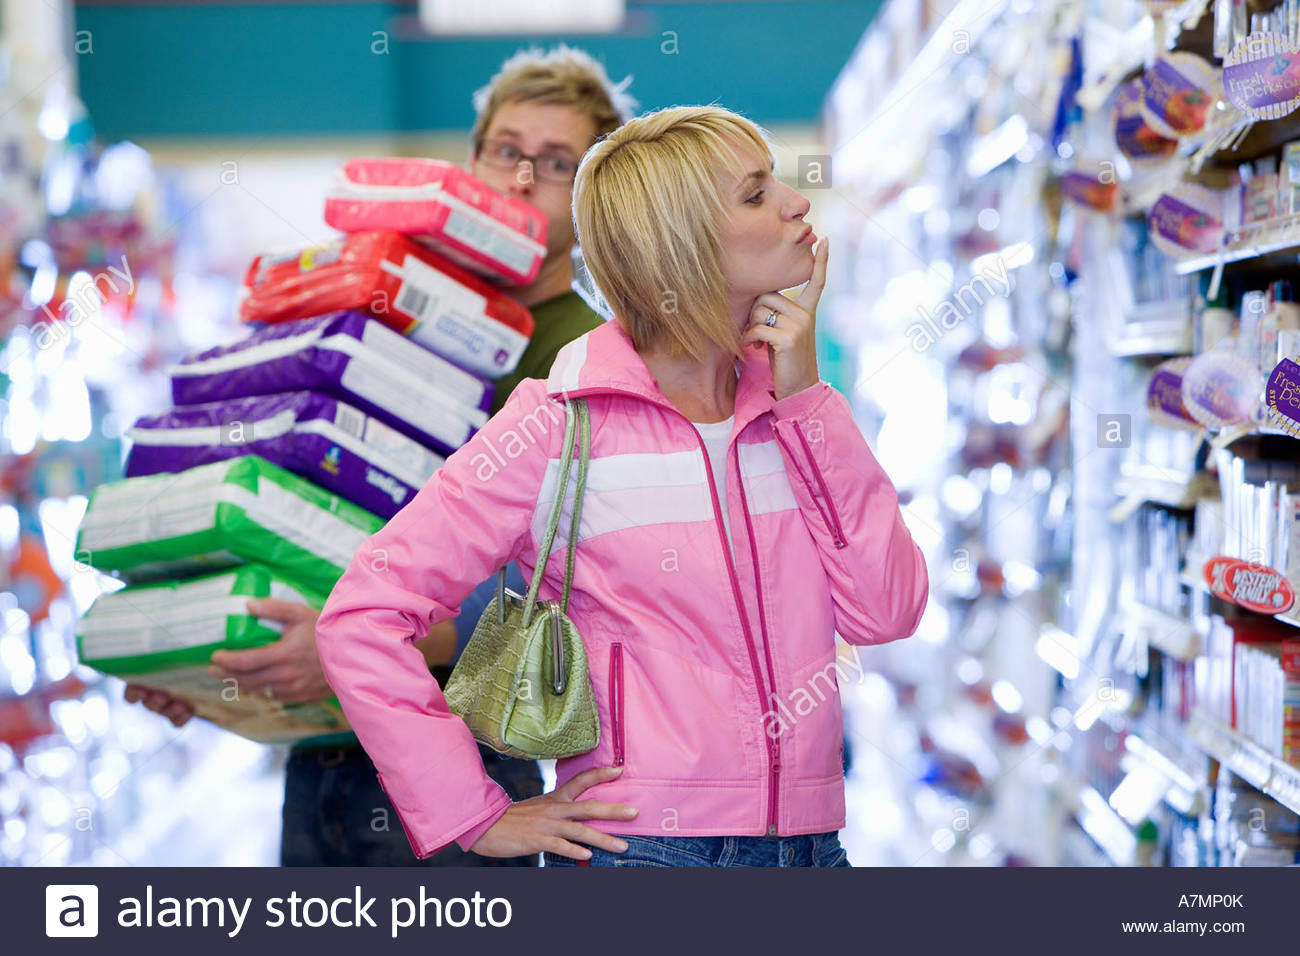 Couple shopping in supermarket man struggling with stack of items woman thinking - Stock Image